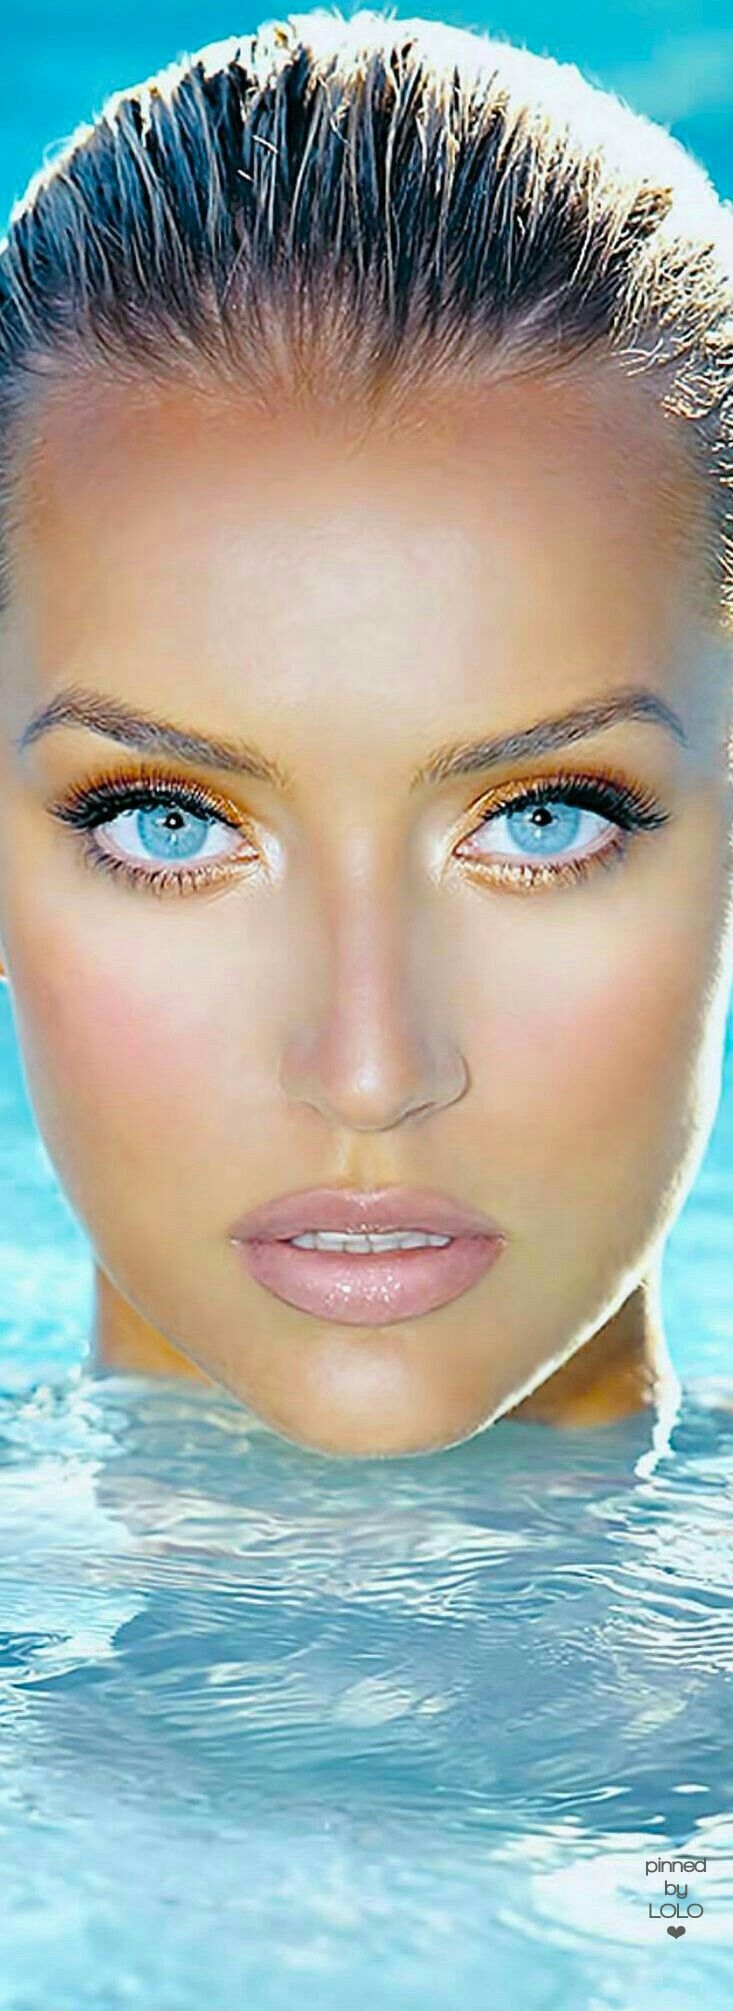 a beautiful model with piercing blue eyes. I like this models eyes truly sky blue. I don't think they r contacts or digital? beautifully looking into you the viewer. piercing you in a seemingly question or allurement.